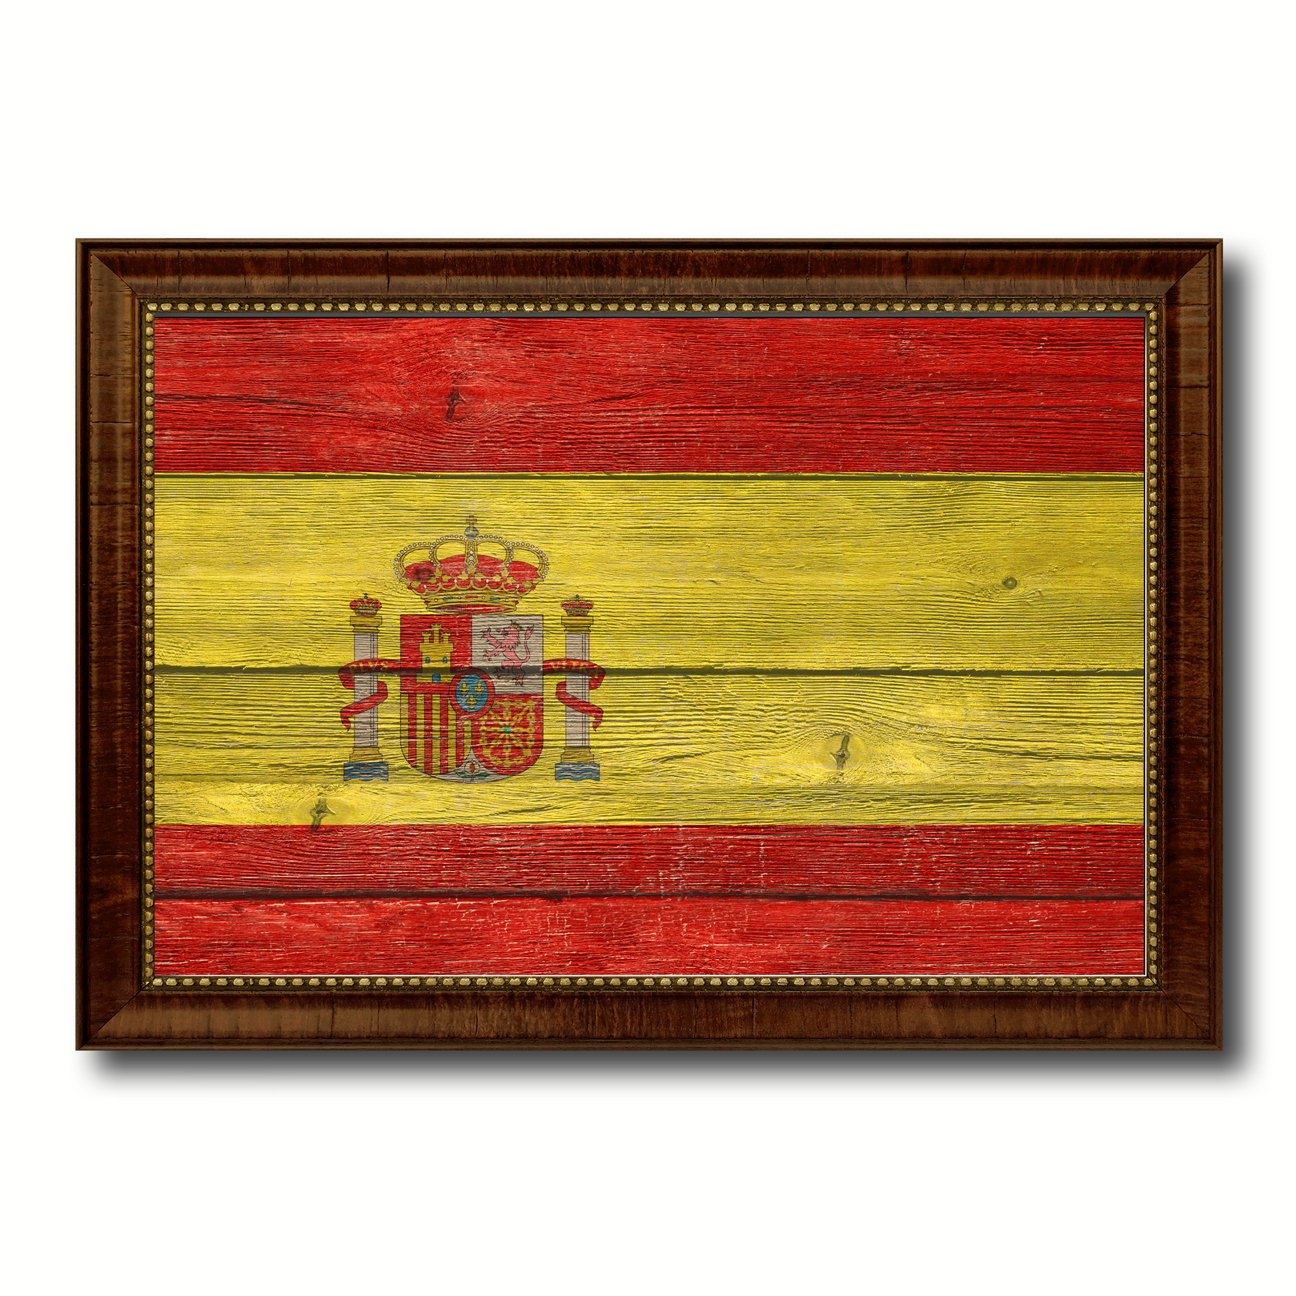 Amazon.com: Spain Flag Textured National Country Design Handcrafted ...